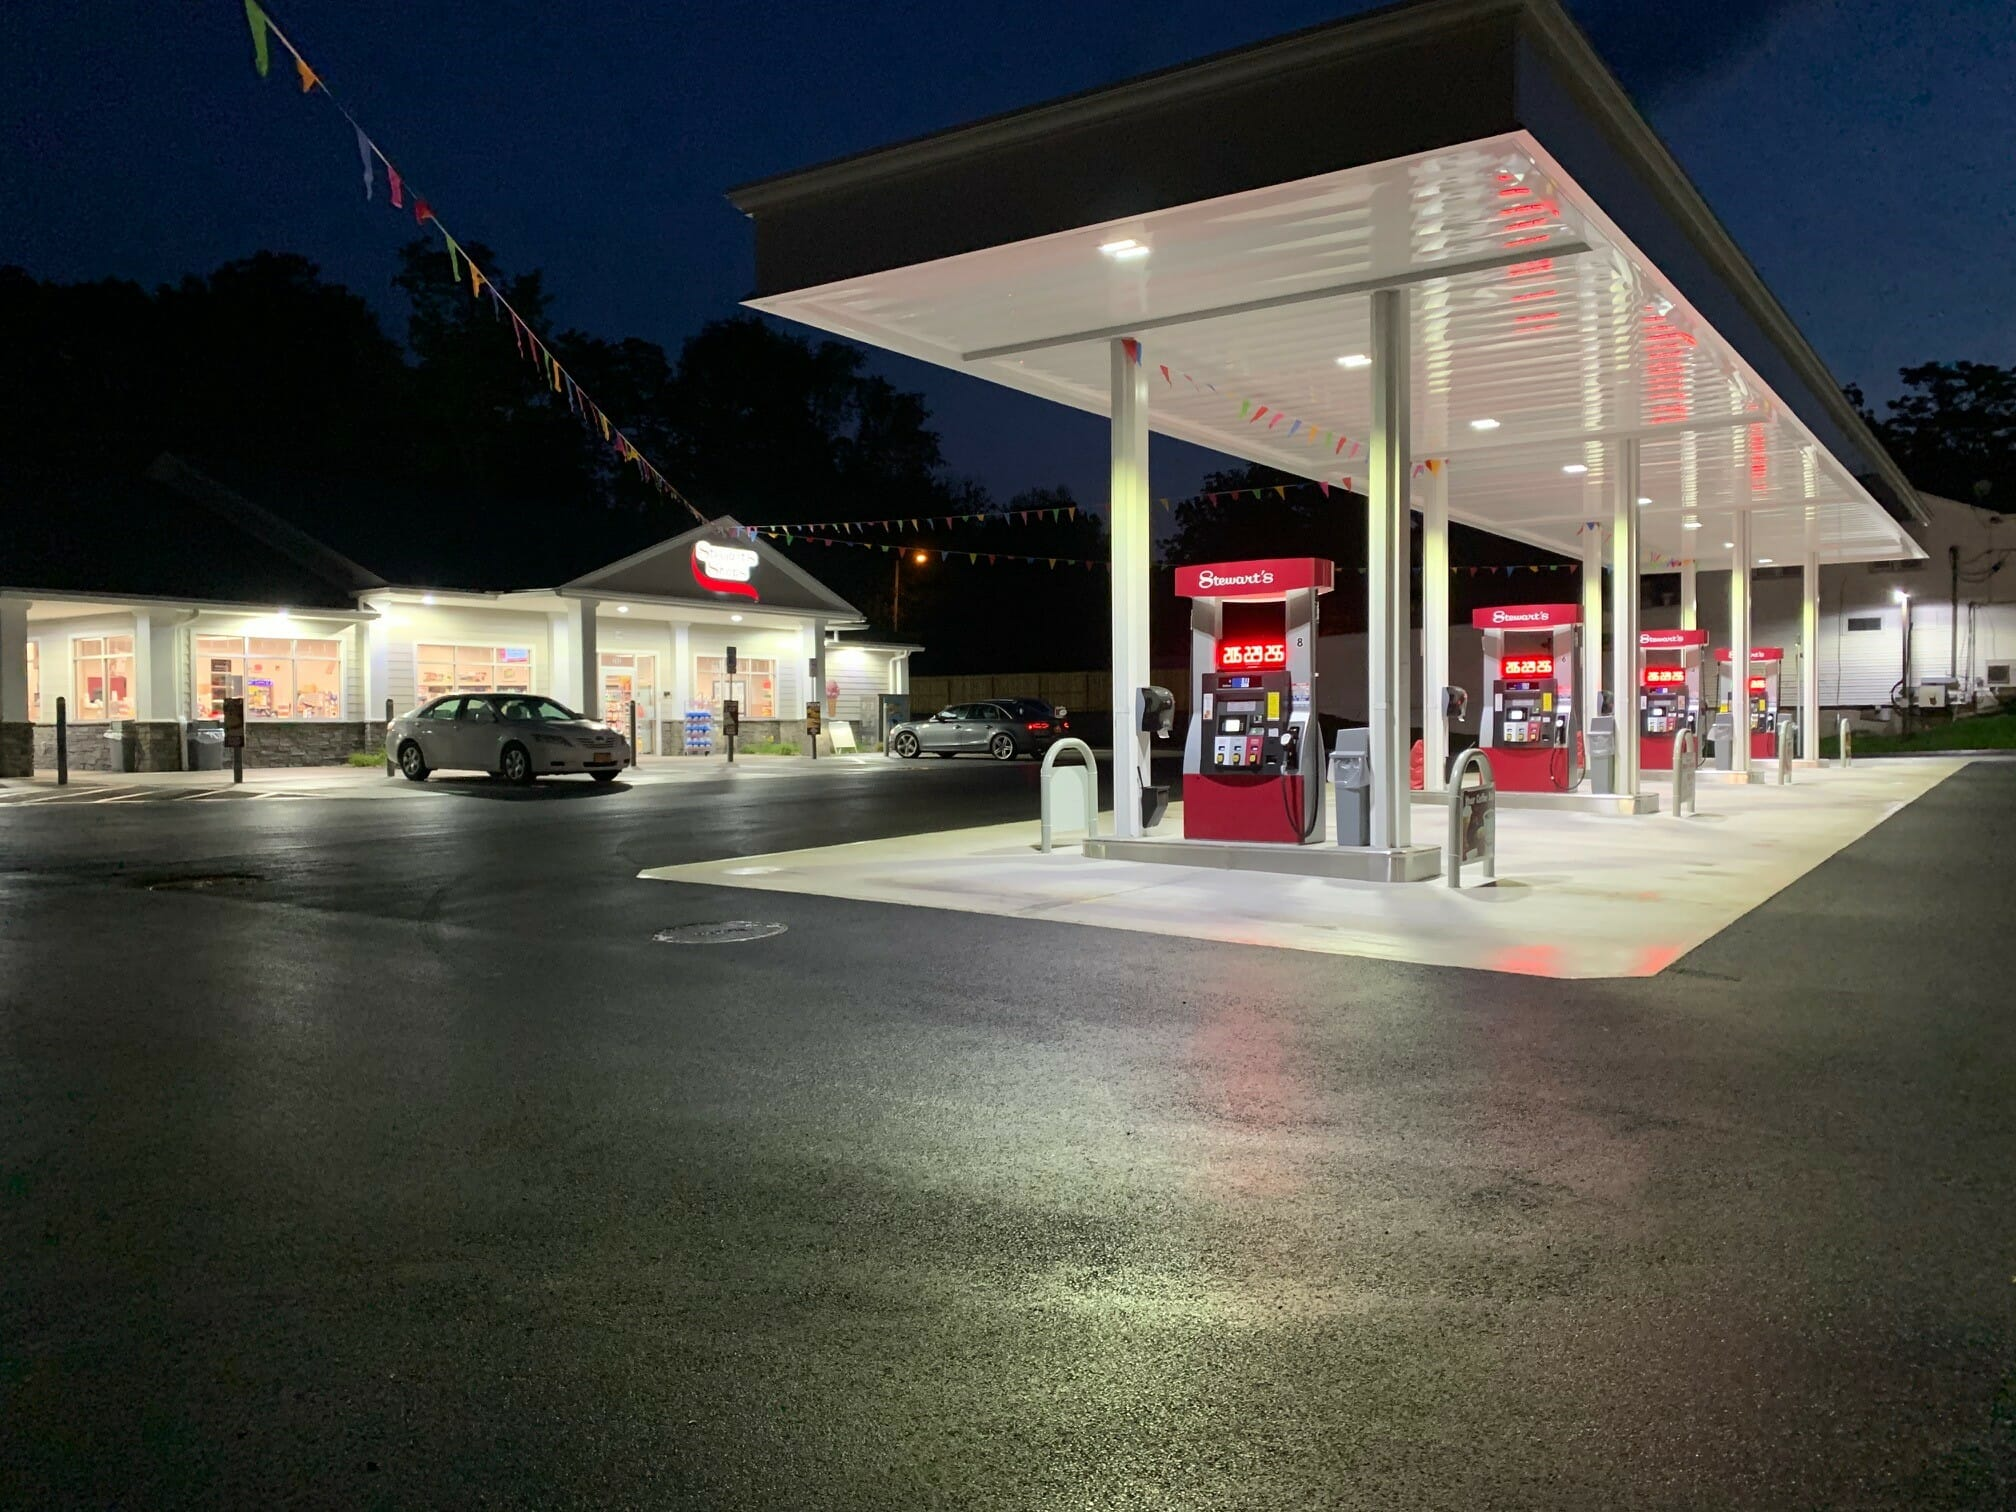 New Windsor store at night